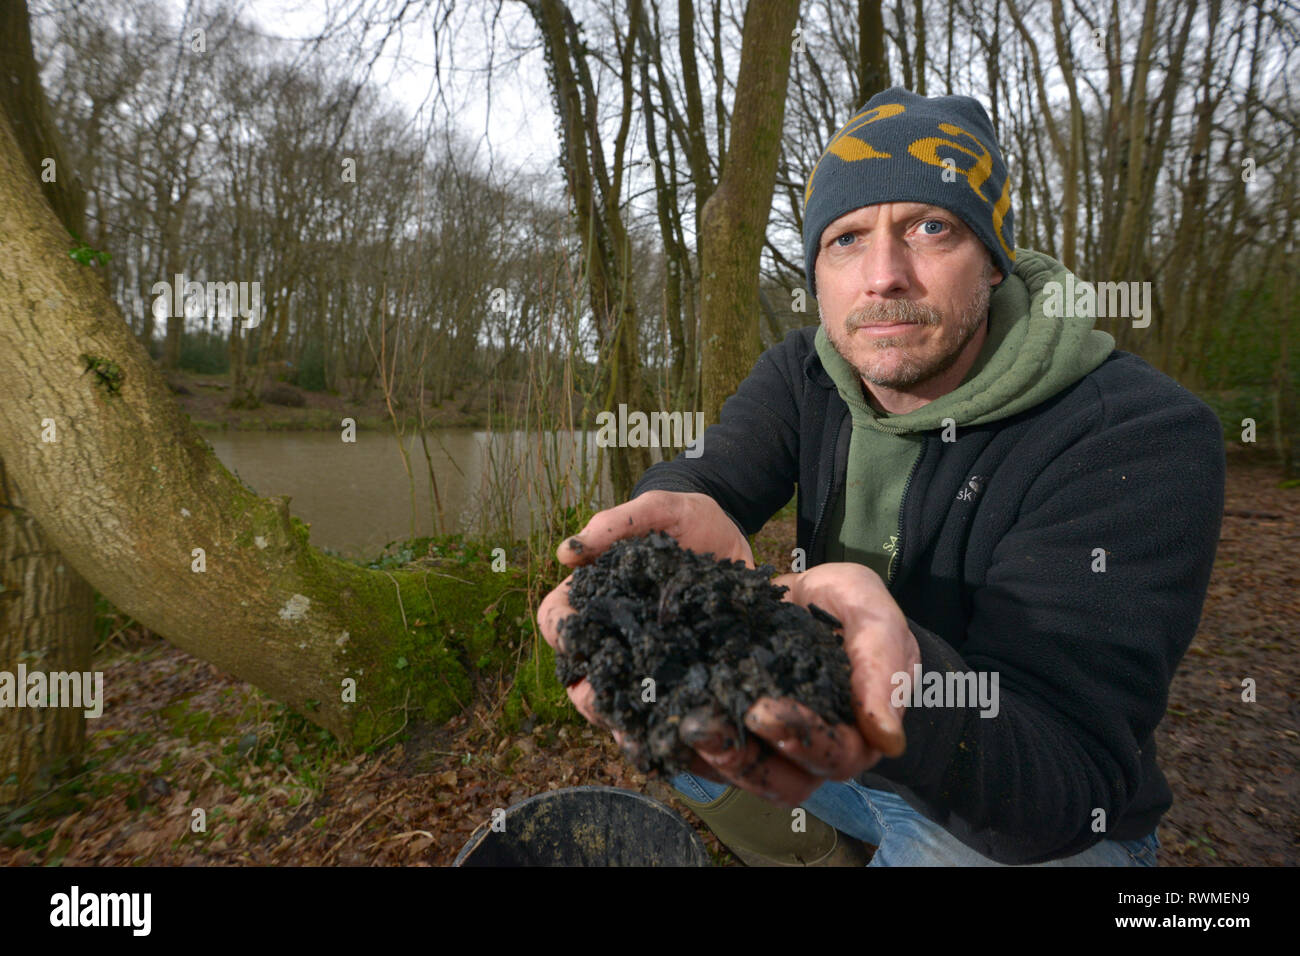 Phil Greenwood of Sacred Earth, Horam, East Sussex, with biochar - a natural soil enrichment that could help suppress ash dieback disease. - Stock Image